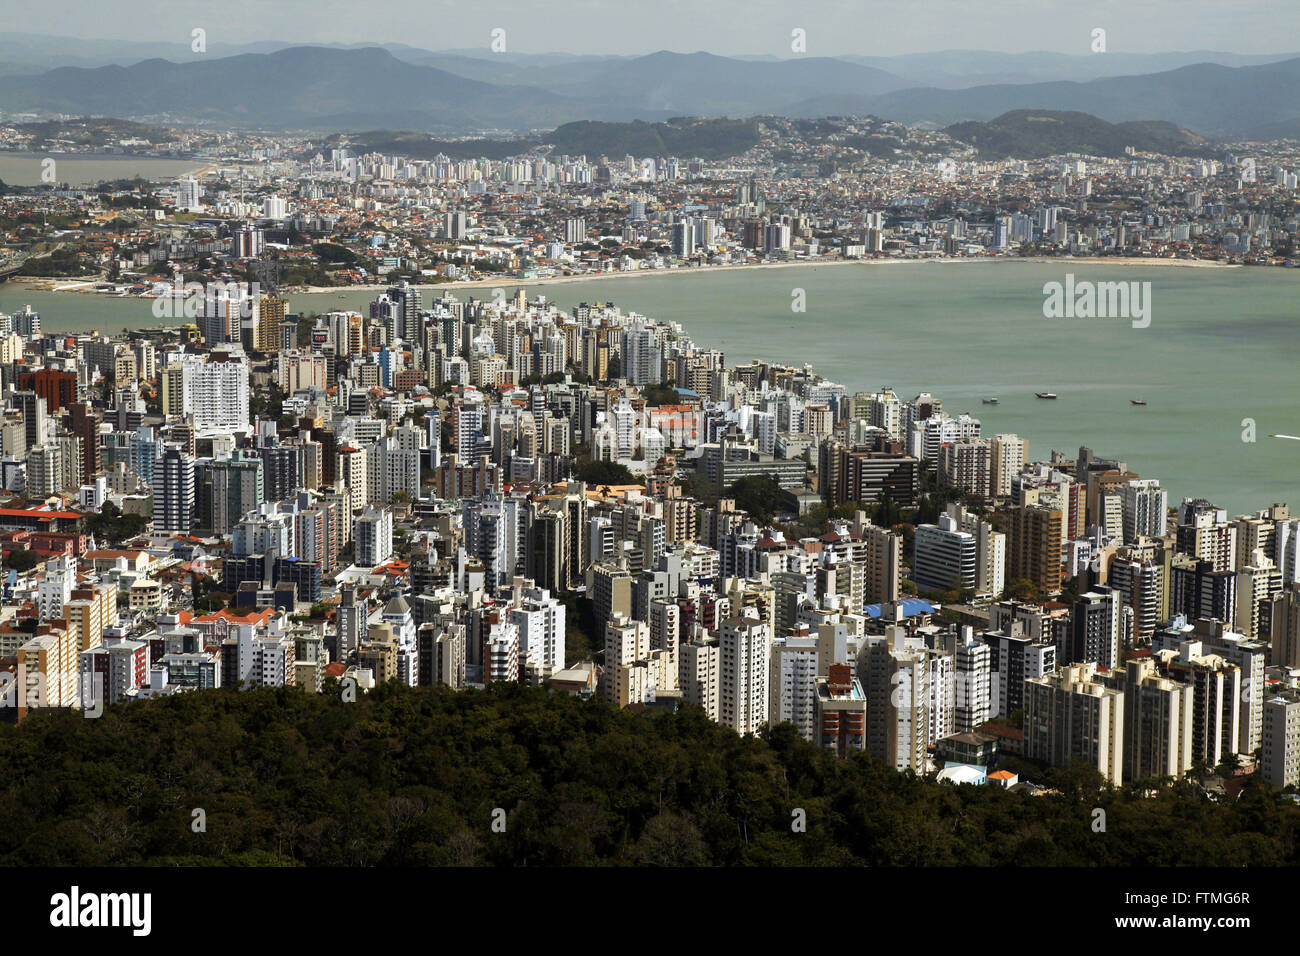 View of the city of Florianopolis from the viewpoint of Morro da Cruz - Stock Image